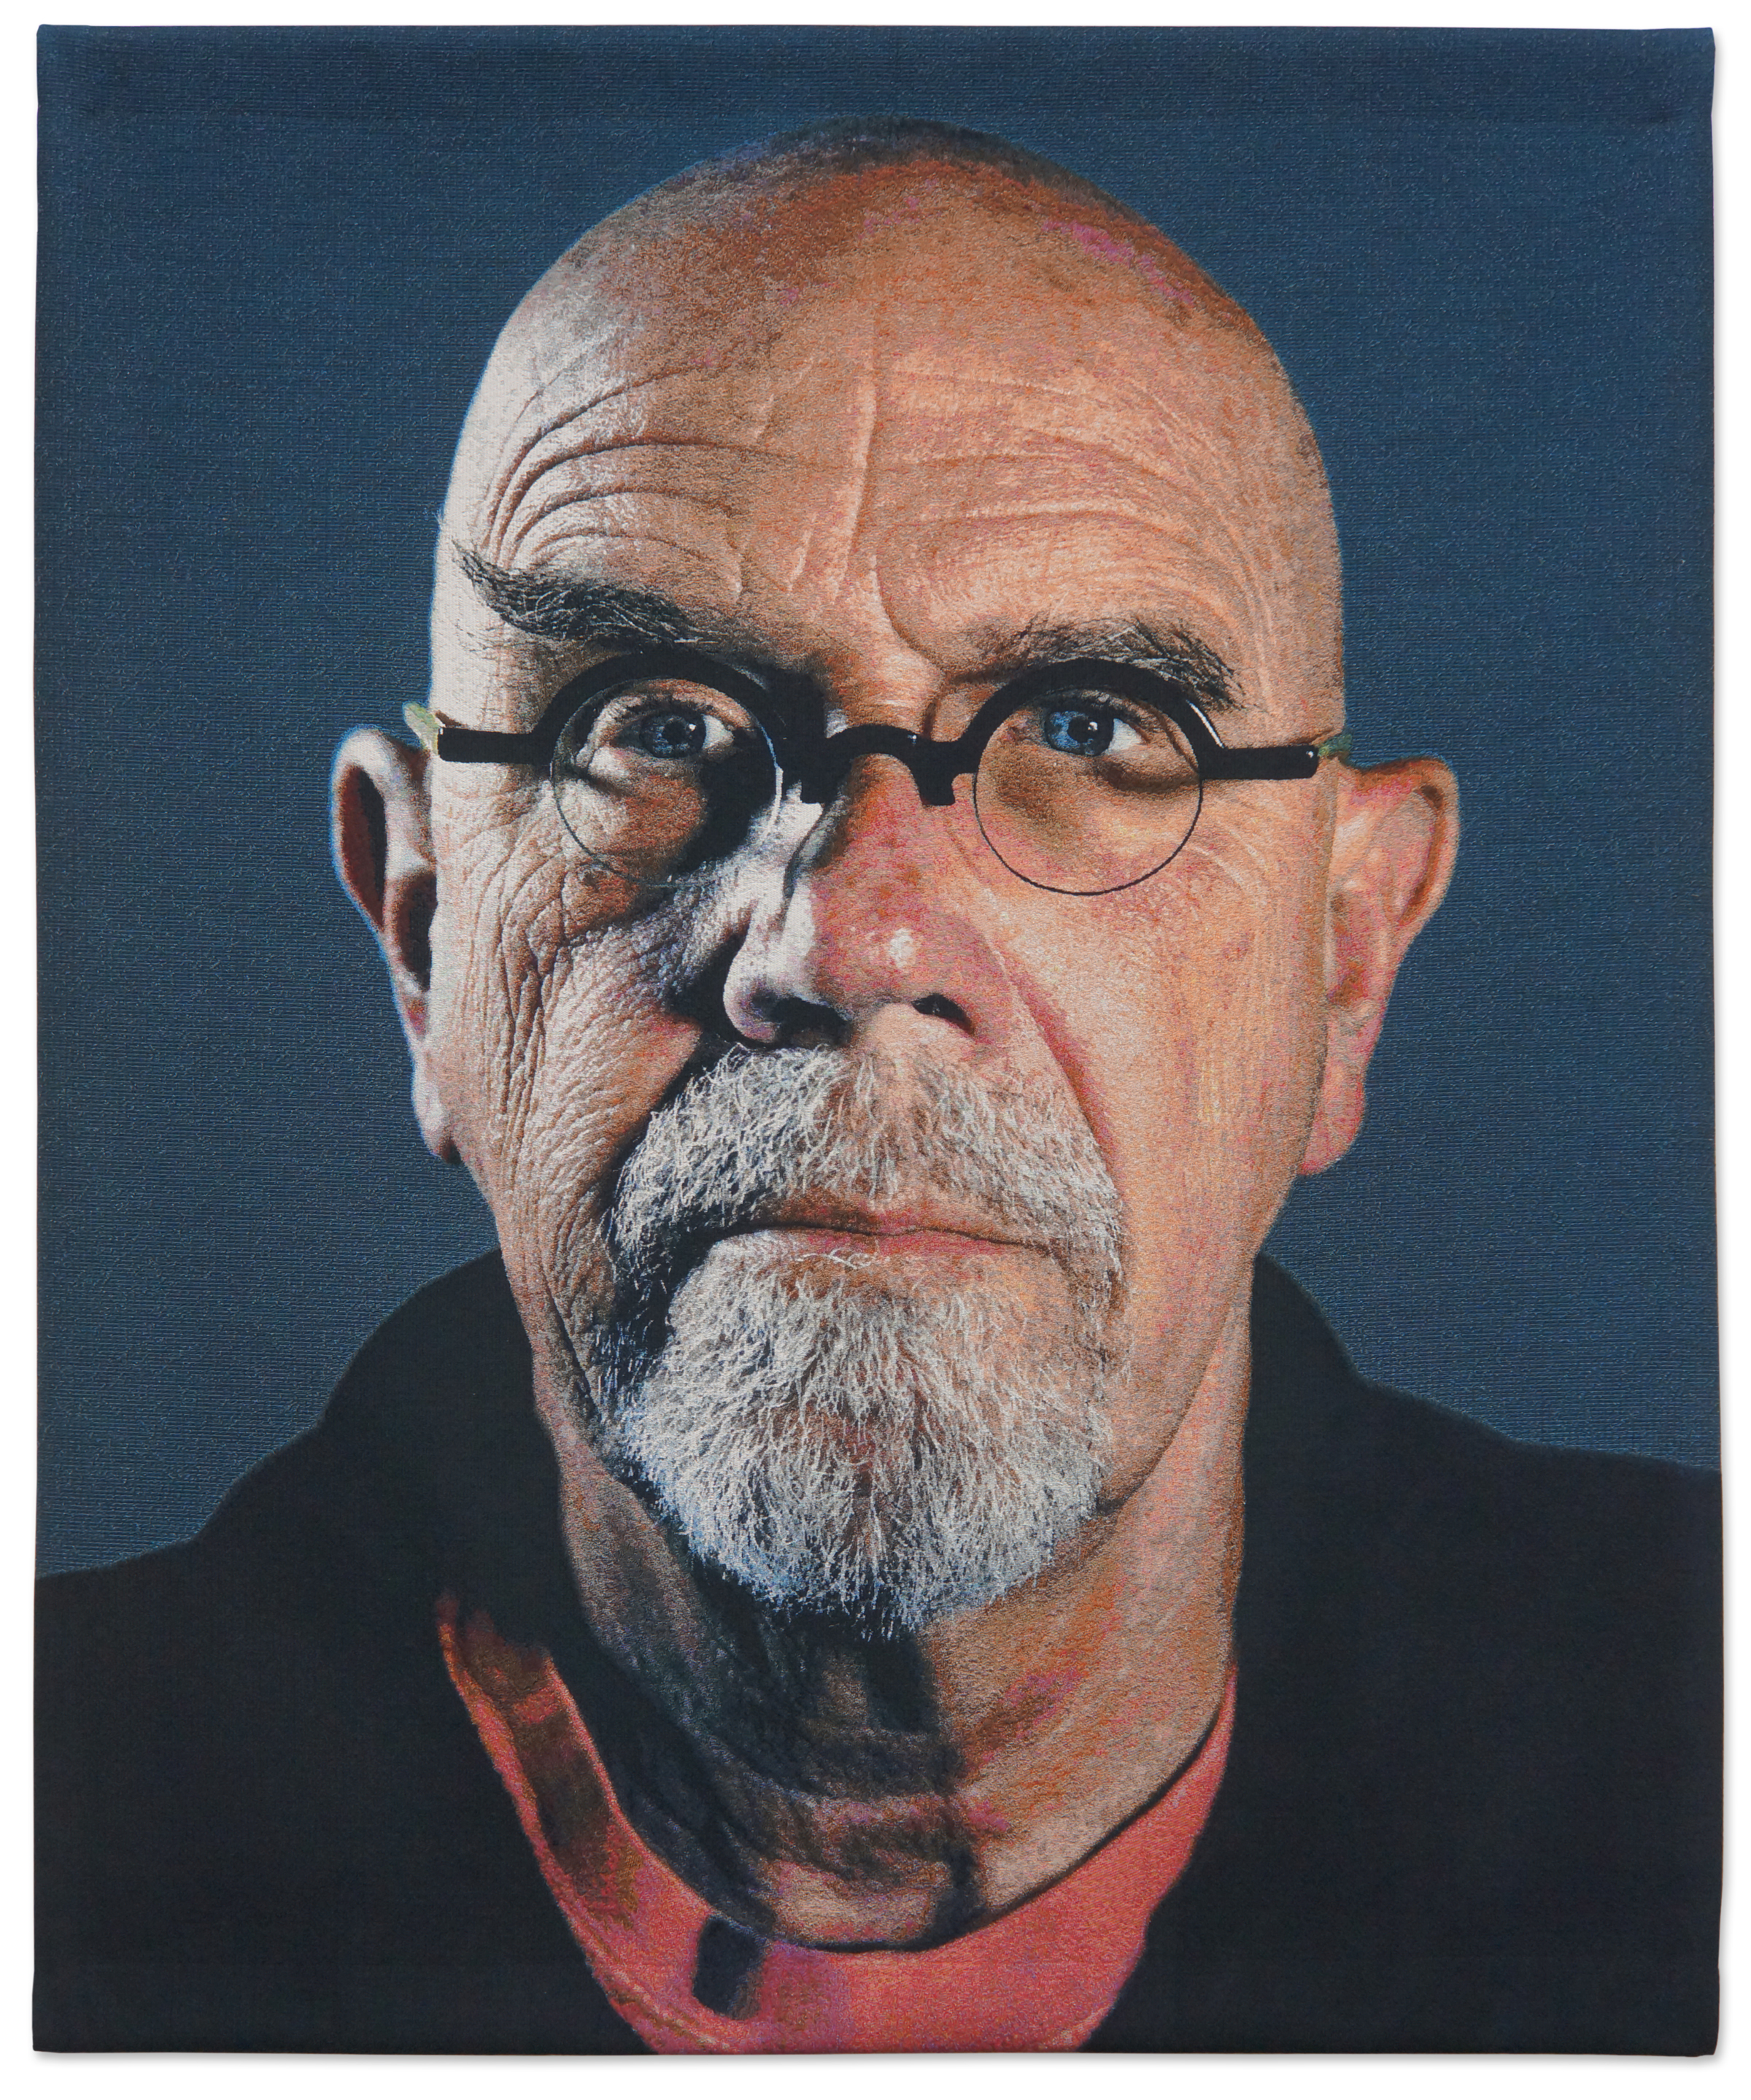 chuck-close-self-portrait-pink-t-shirt-jacquard-tapestry-see-document-for-full-credit-hi-res